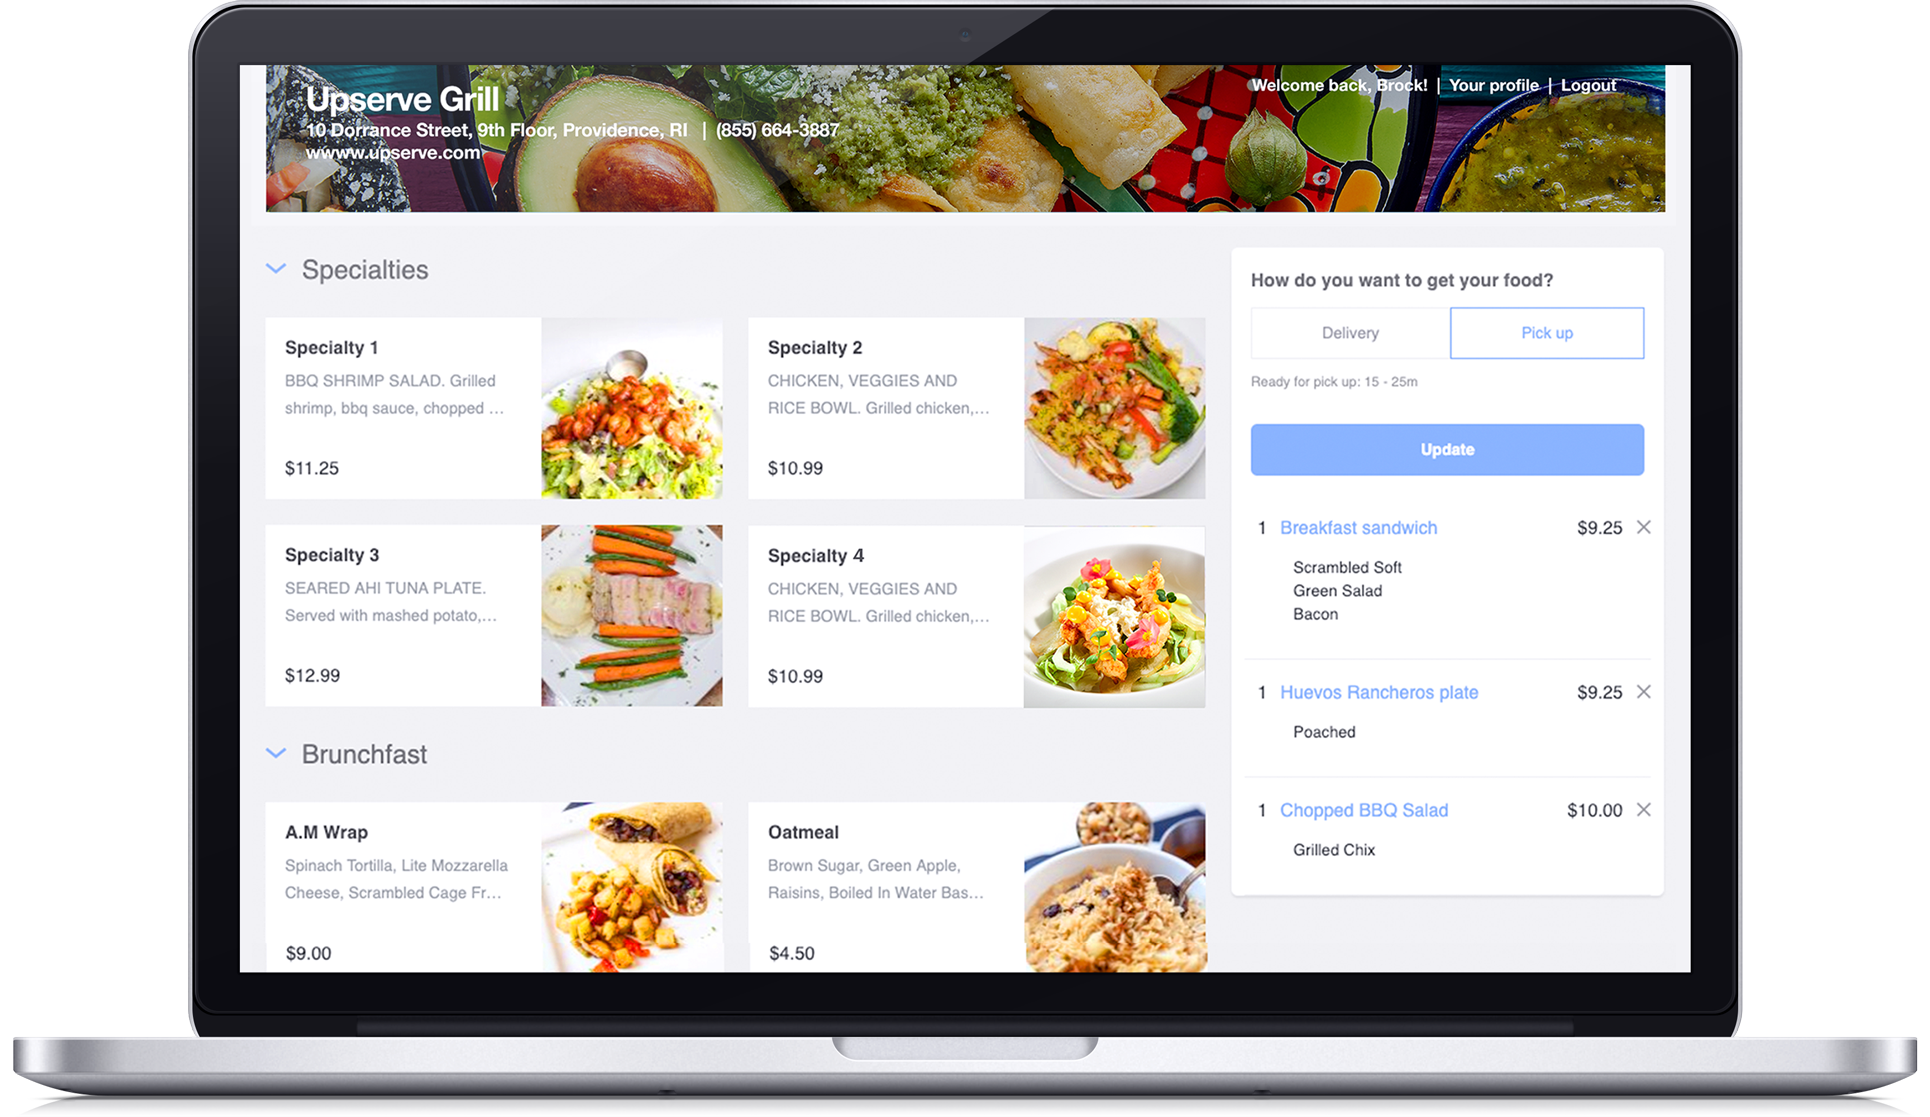 Computer with restaurant online ordering website with food pictures